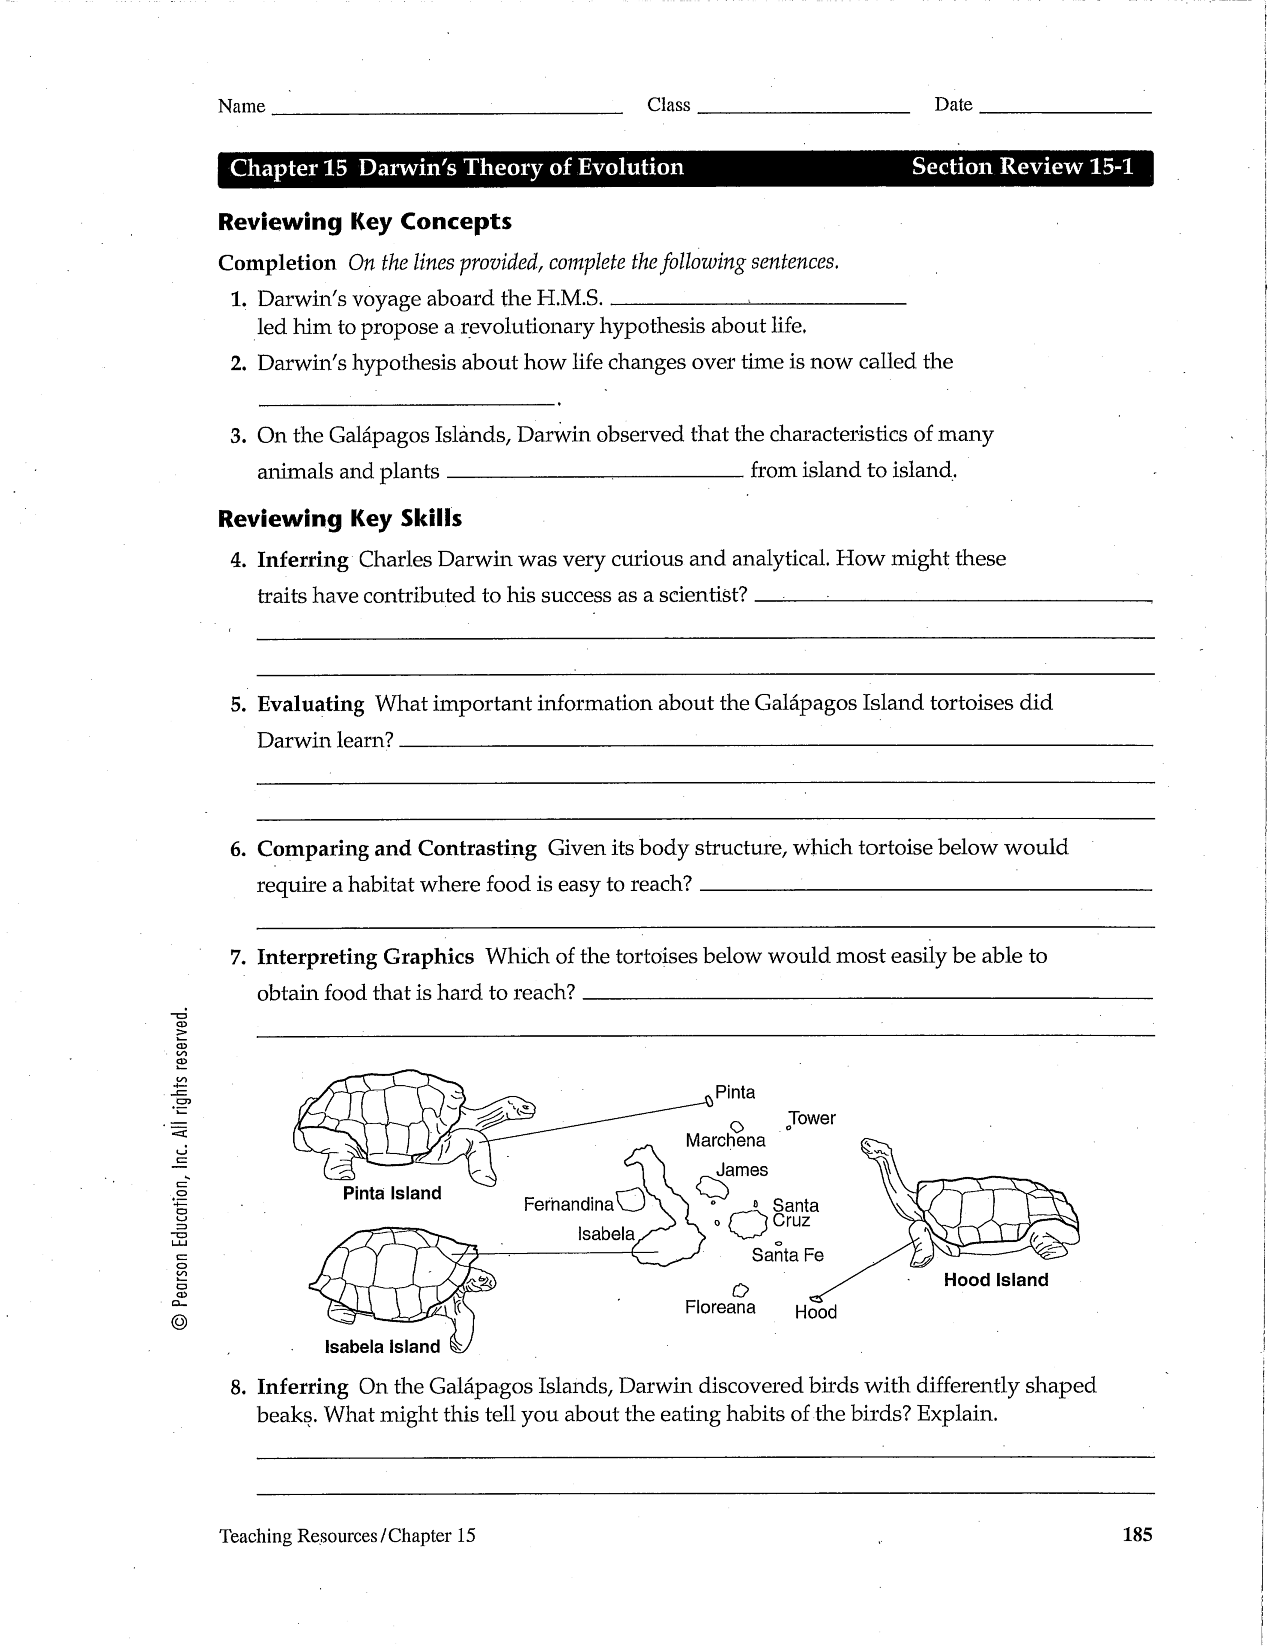 Darwin S Theory Of Evolution Worksheet Chapter 15 Darwin S